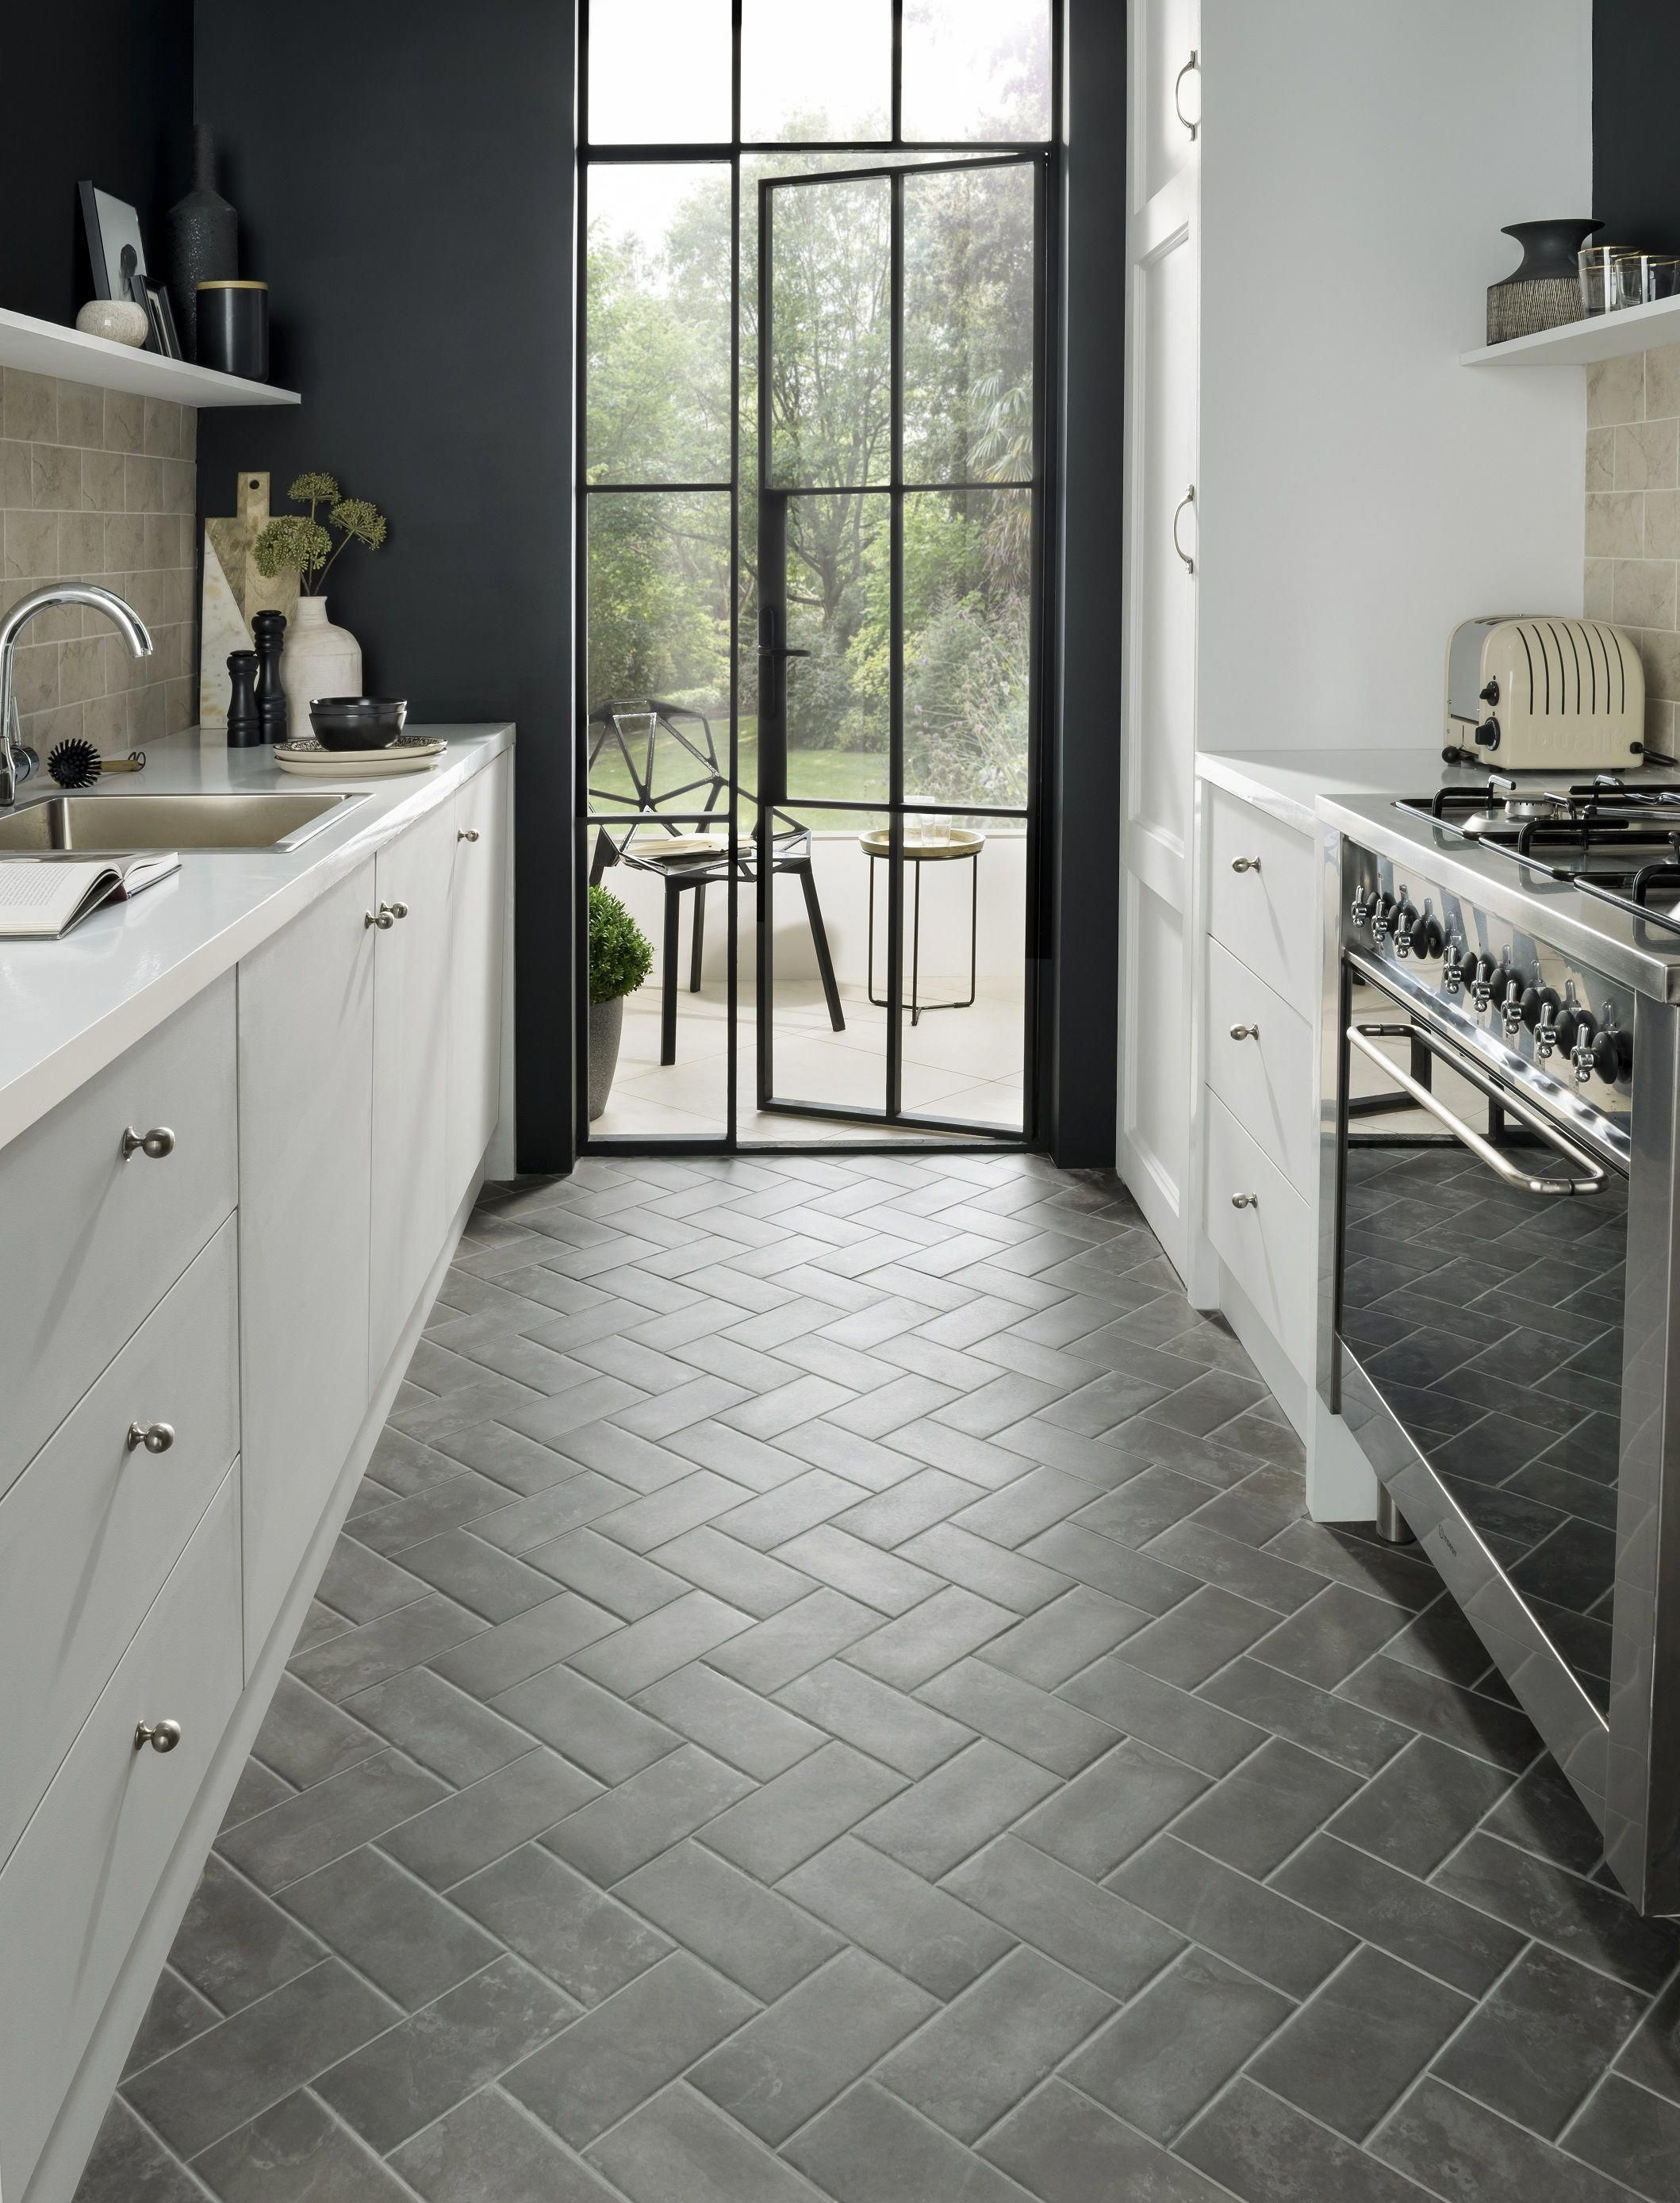 Get The Pros And Cons Practically Interchange Types Of Tile For Your Kitchen Floor From Diy Network K Kitchen Flooring Kitchen Floor Plans Kitchen Floor Tile